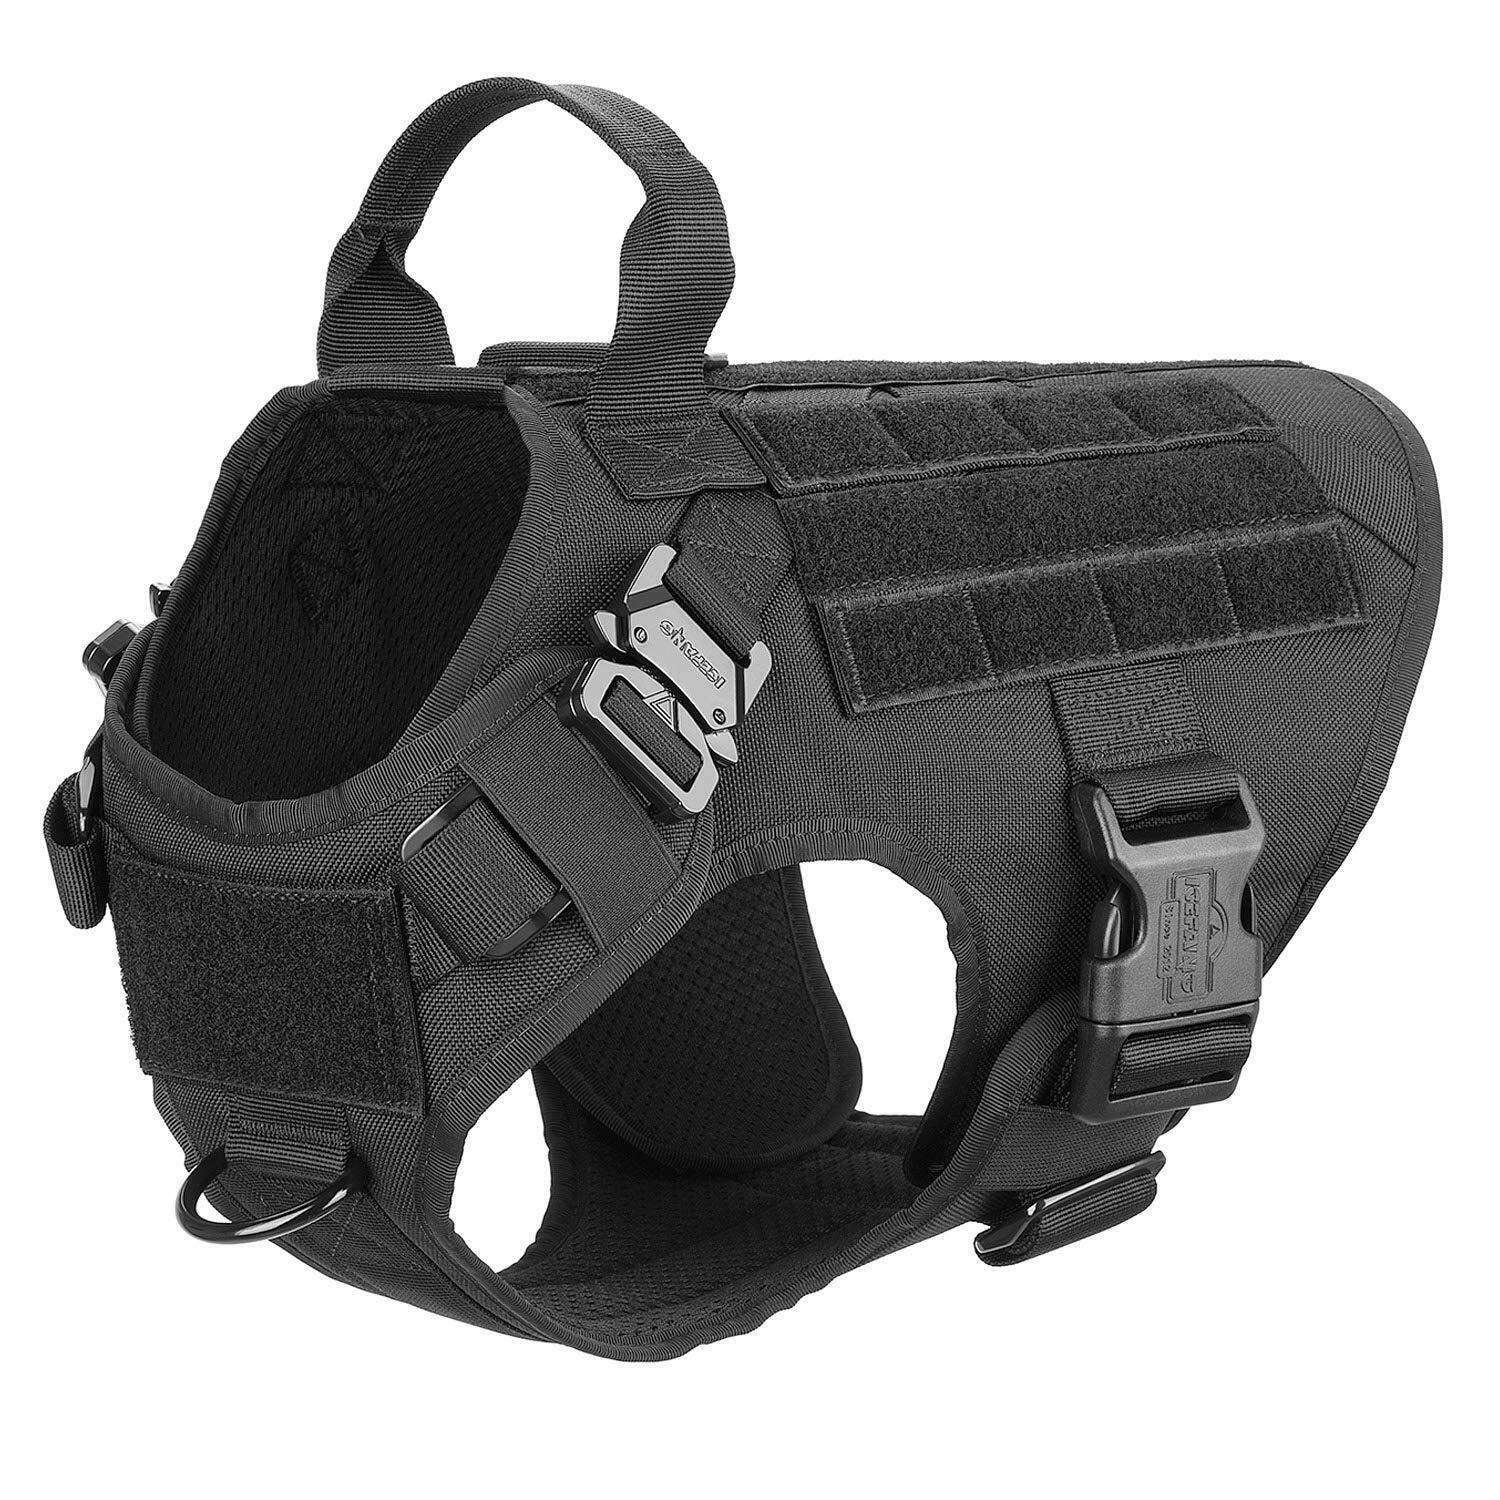 NEW Tactical  Dog Harness,K9 Working Dog Vest FREE SHIPPING  cheap sale outlet online